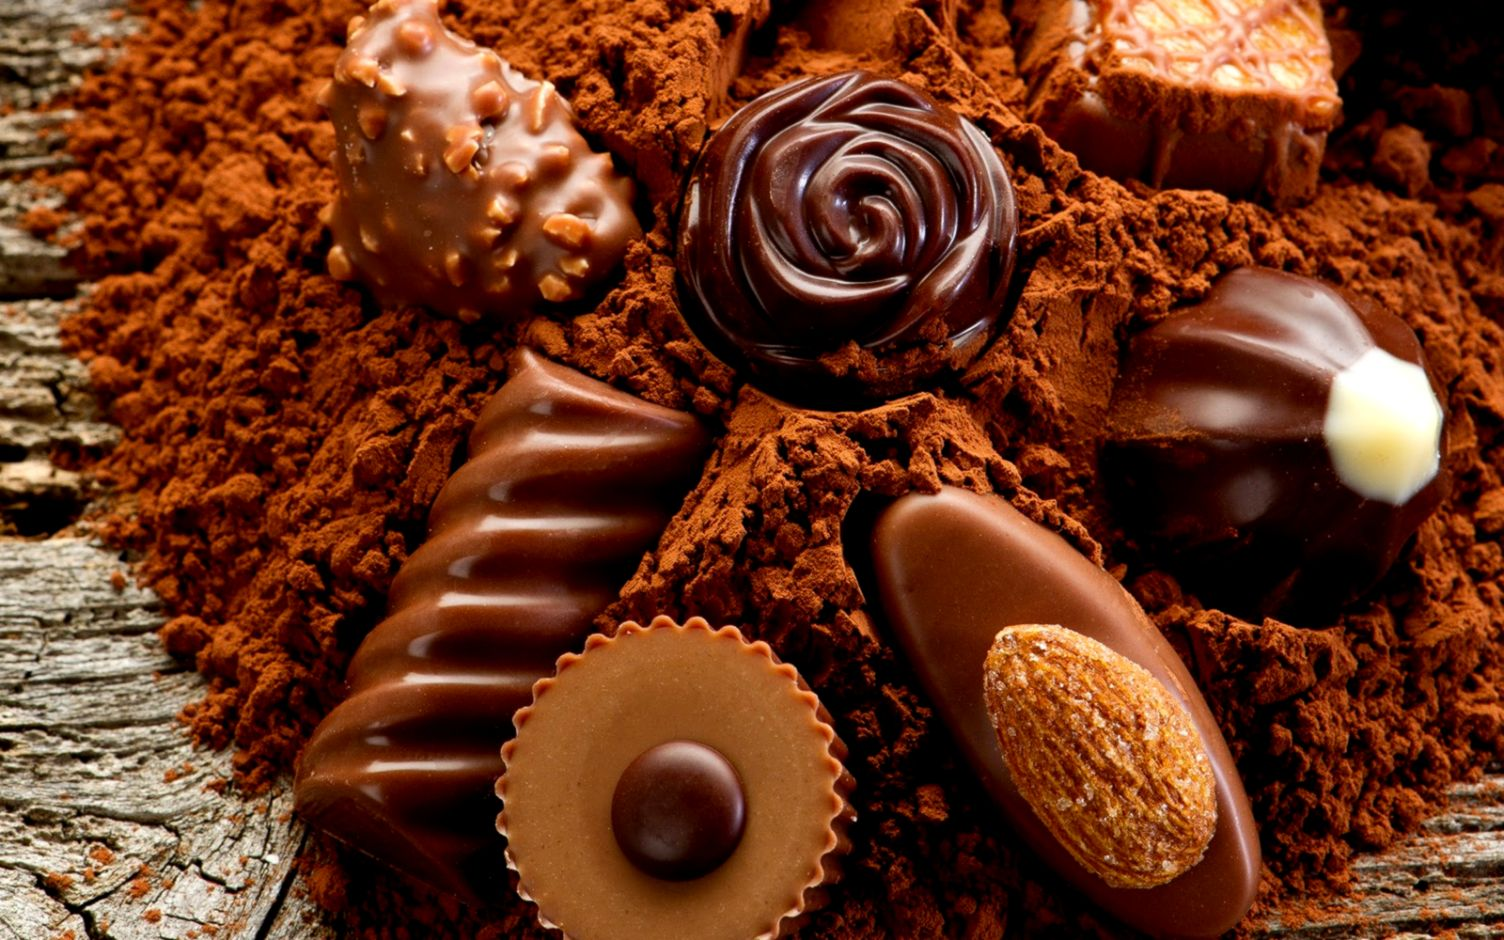 Chocolate Day Wallpapers 7 Qhd Wallpapers